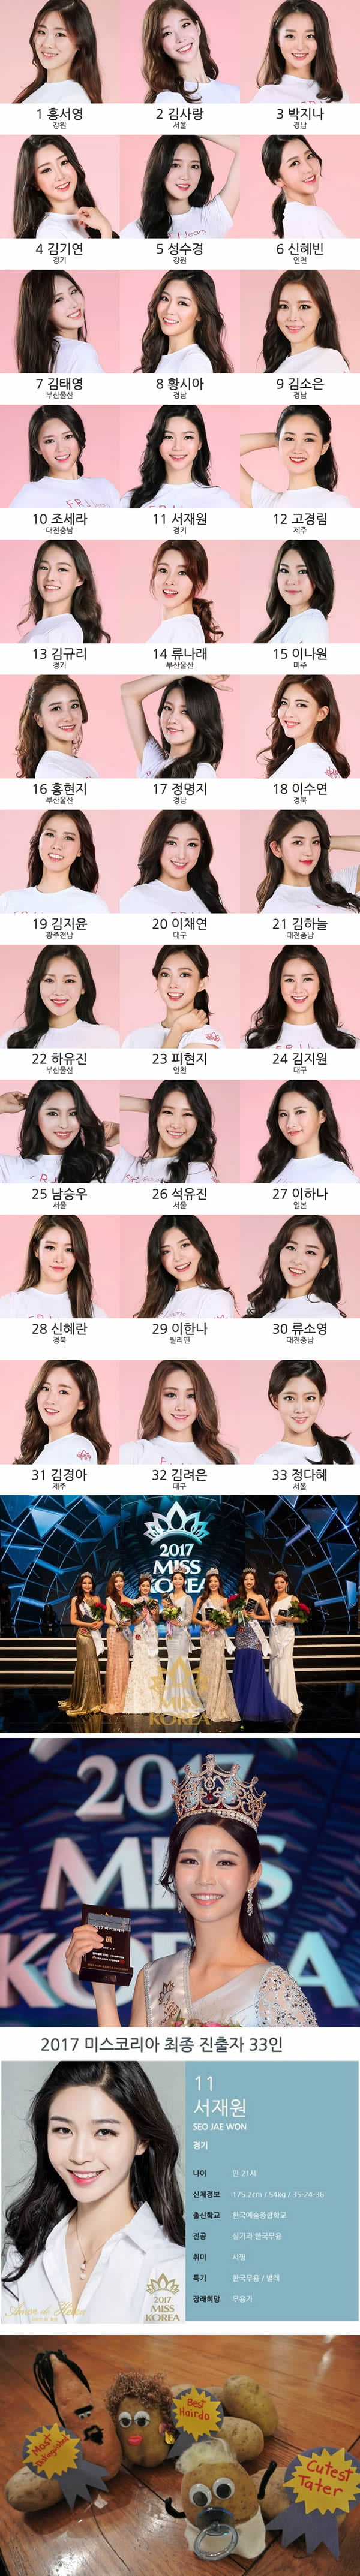 Meet contestants and 'Miss Korea 2017' Seo Jae Won. They all look the same to me